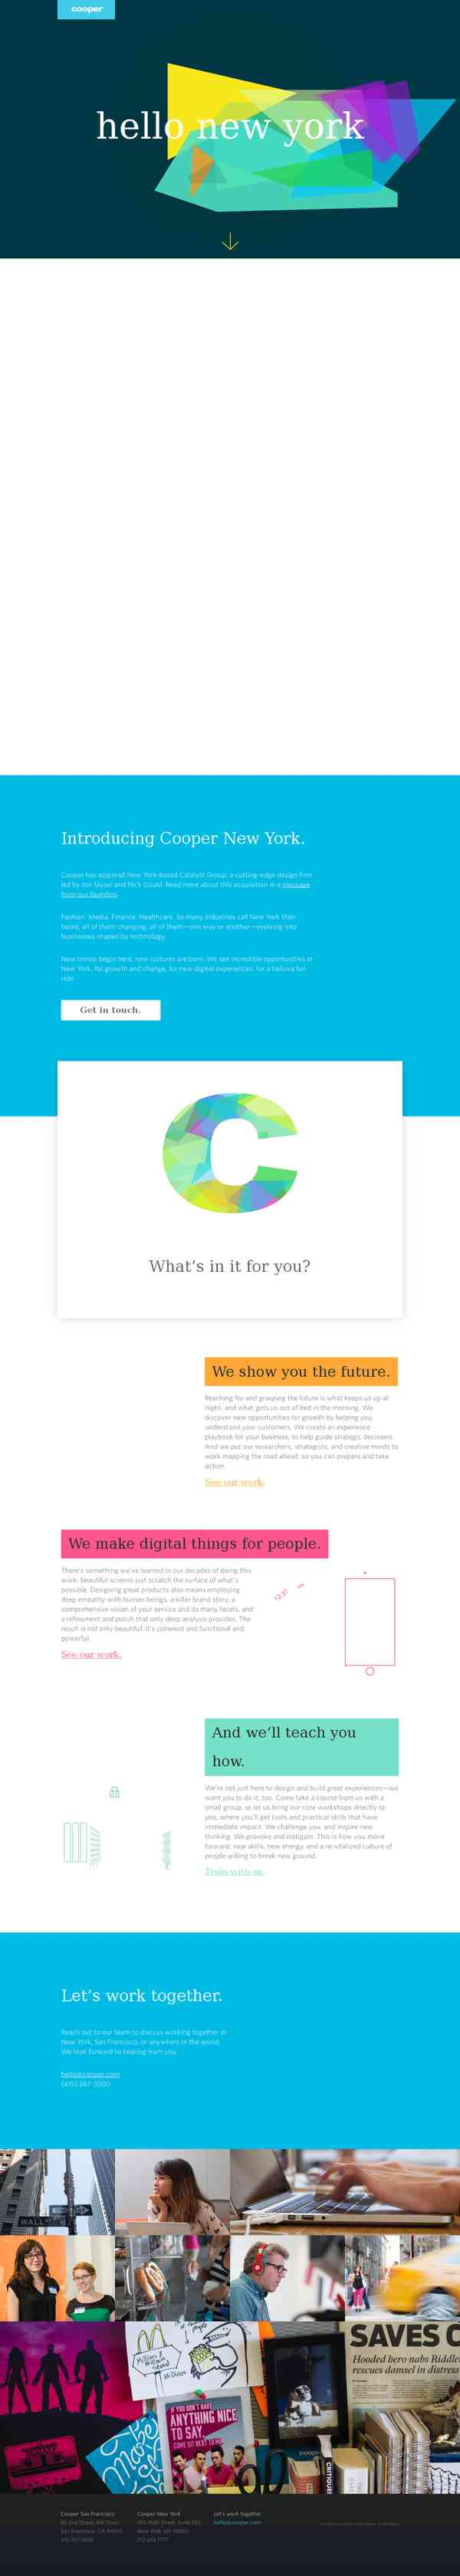 Cooper | A user experience design and strategy firm